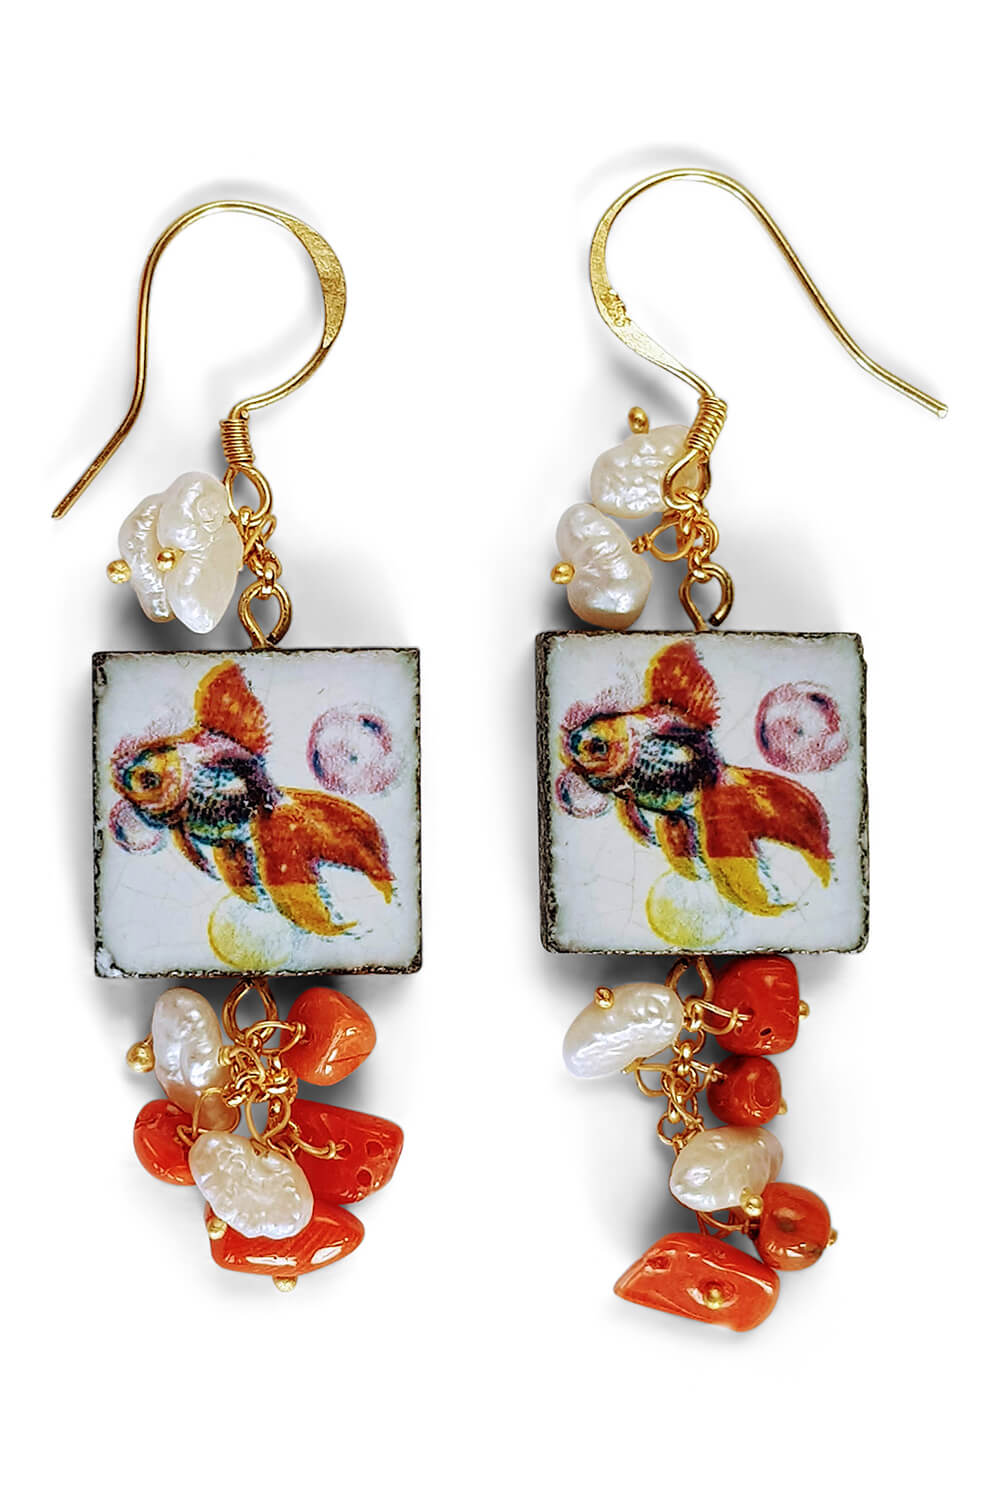 golden earrings with painted tile, corals and pearls PROCIDA